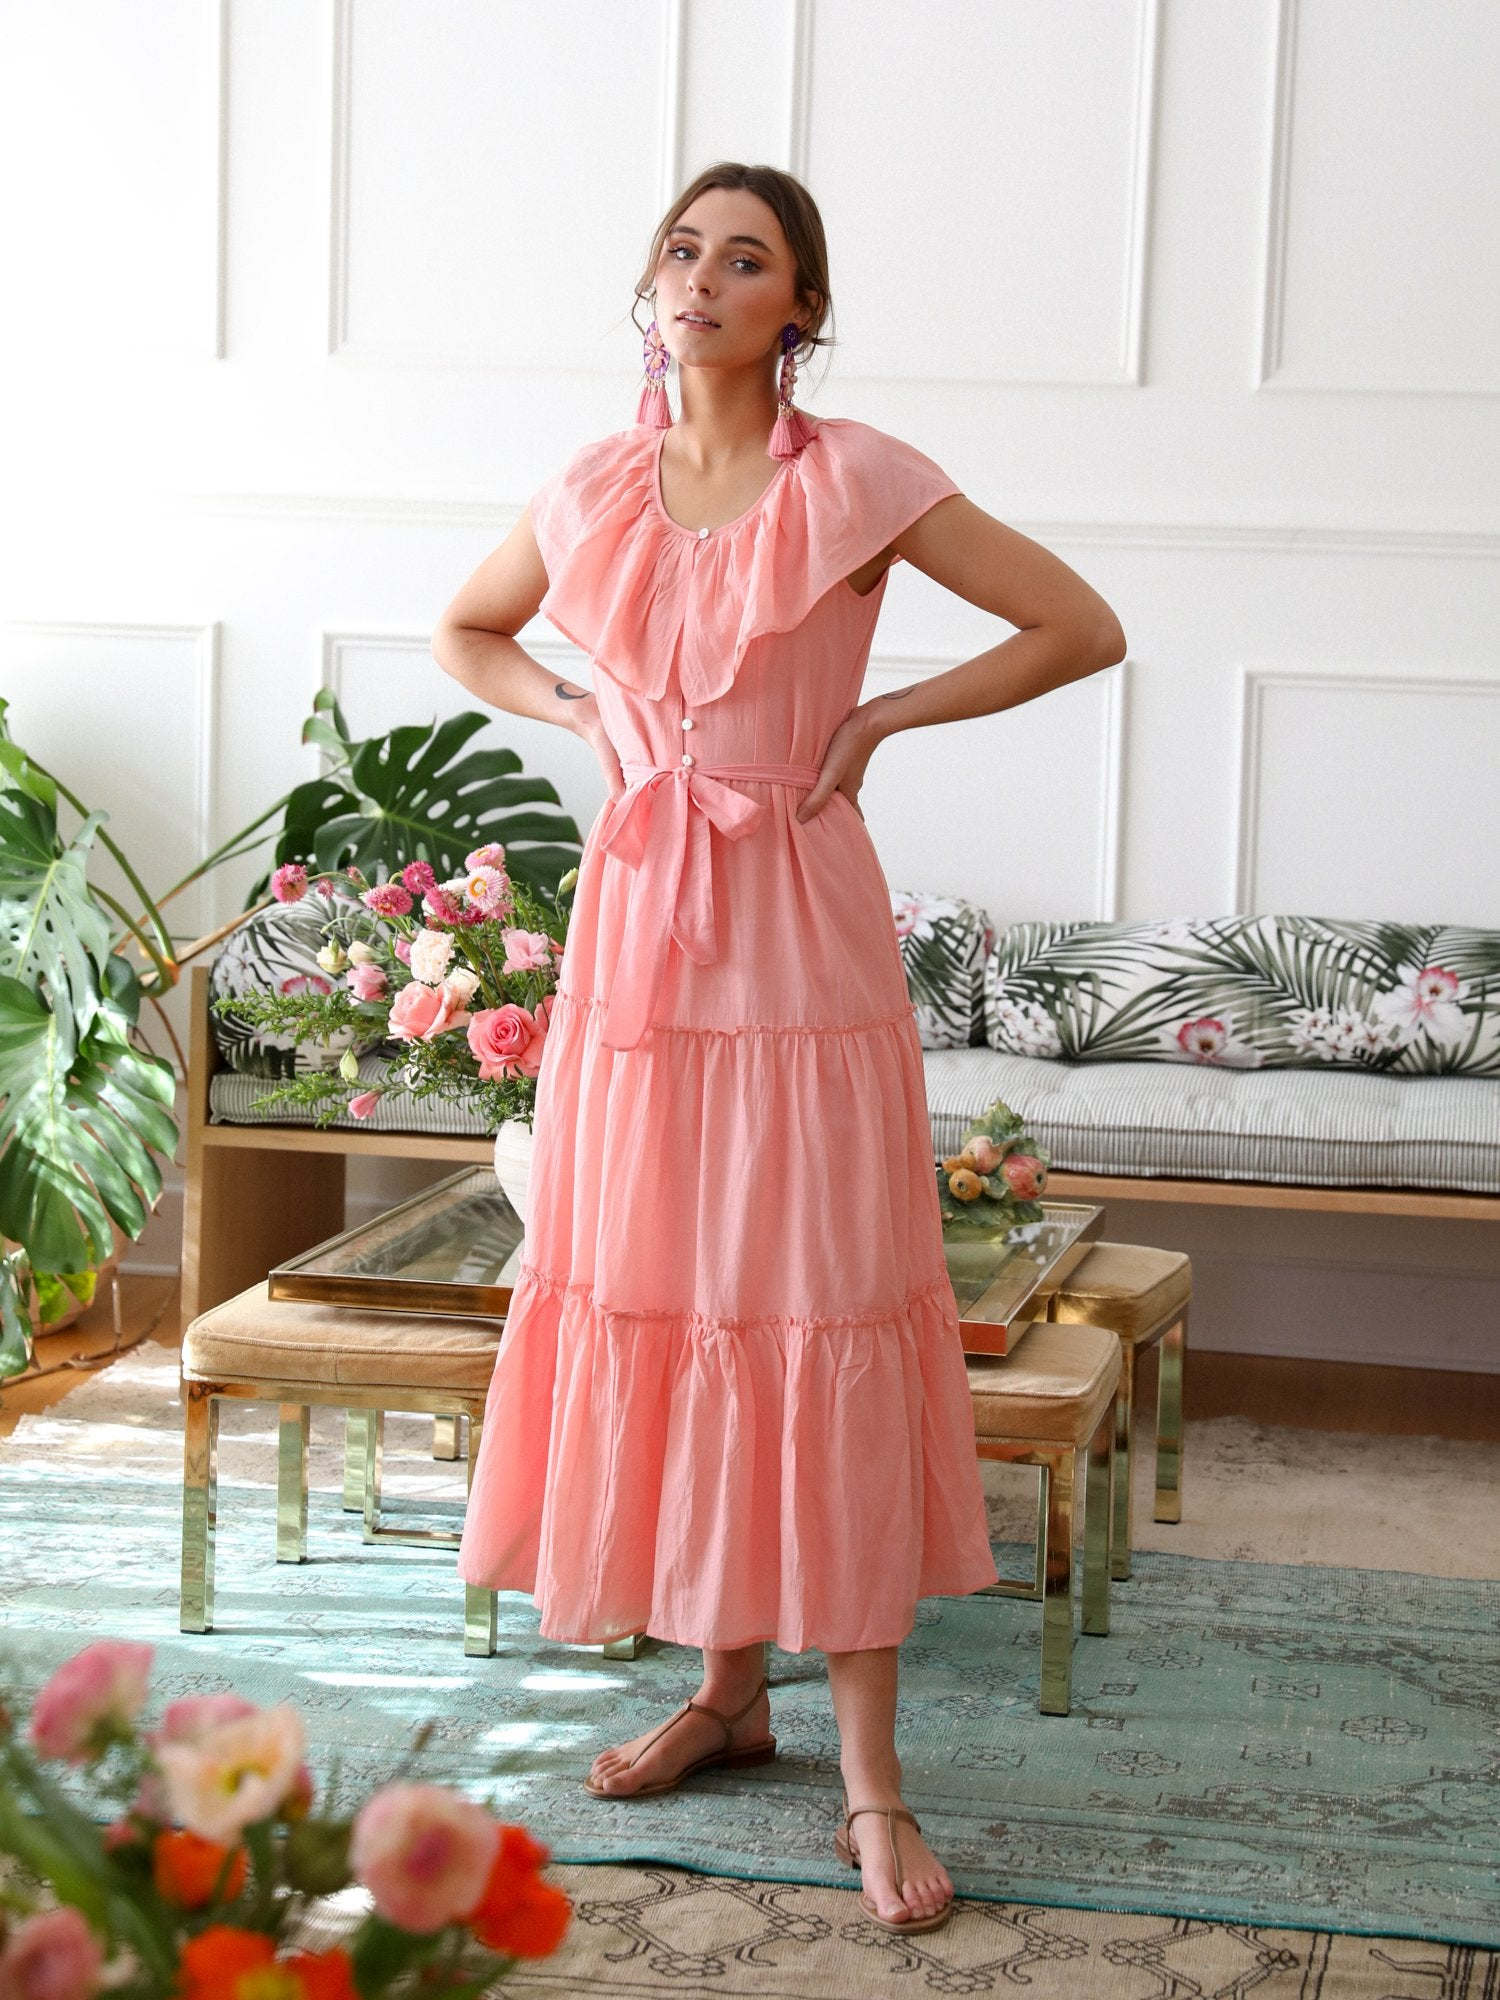 MILLE - Mira Dress in Candlelight Peach